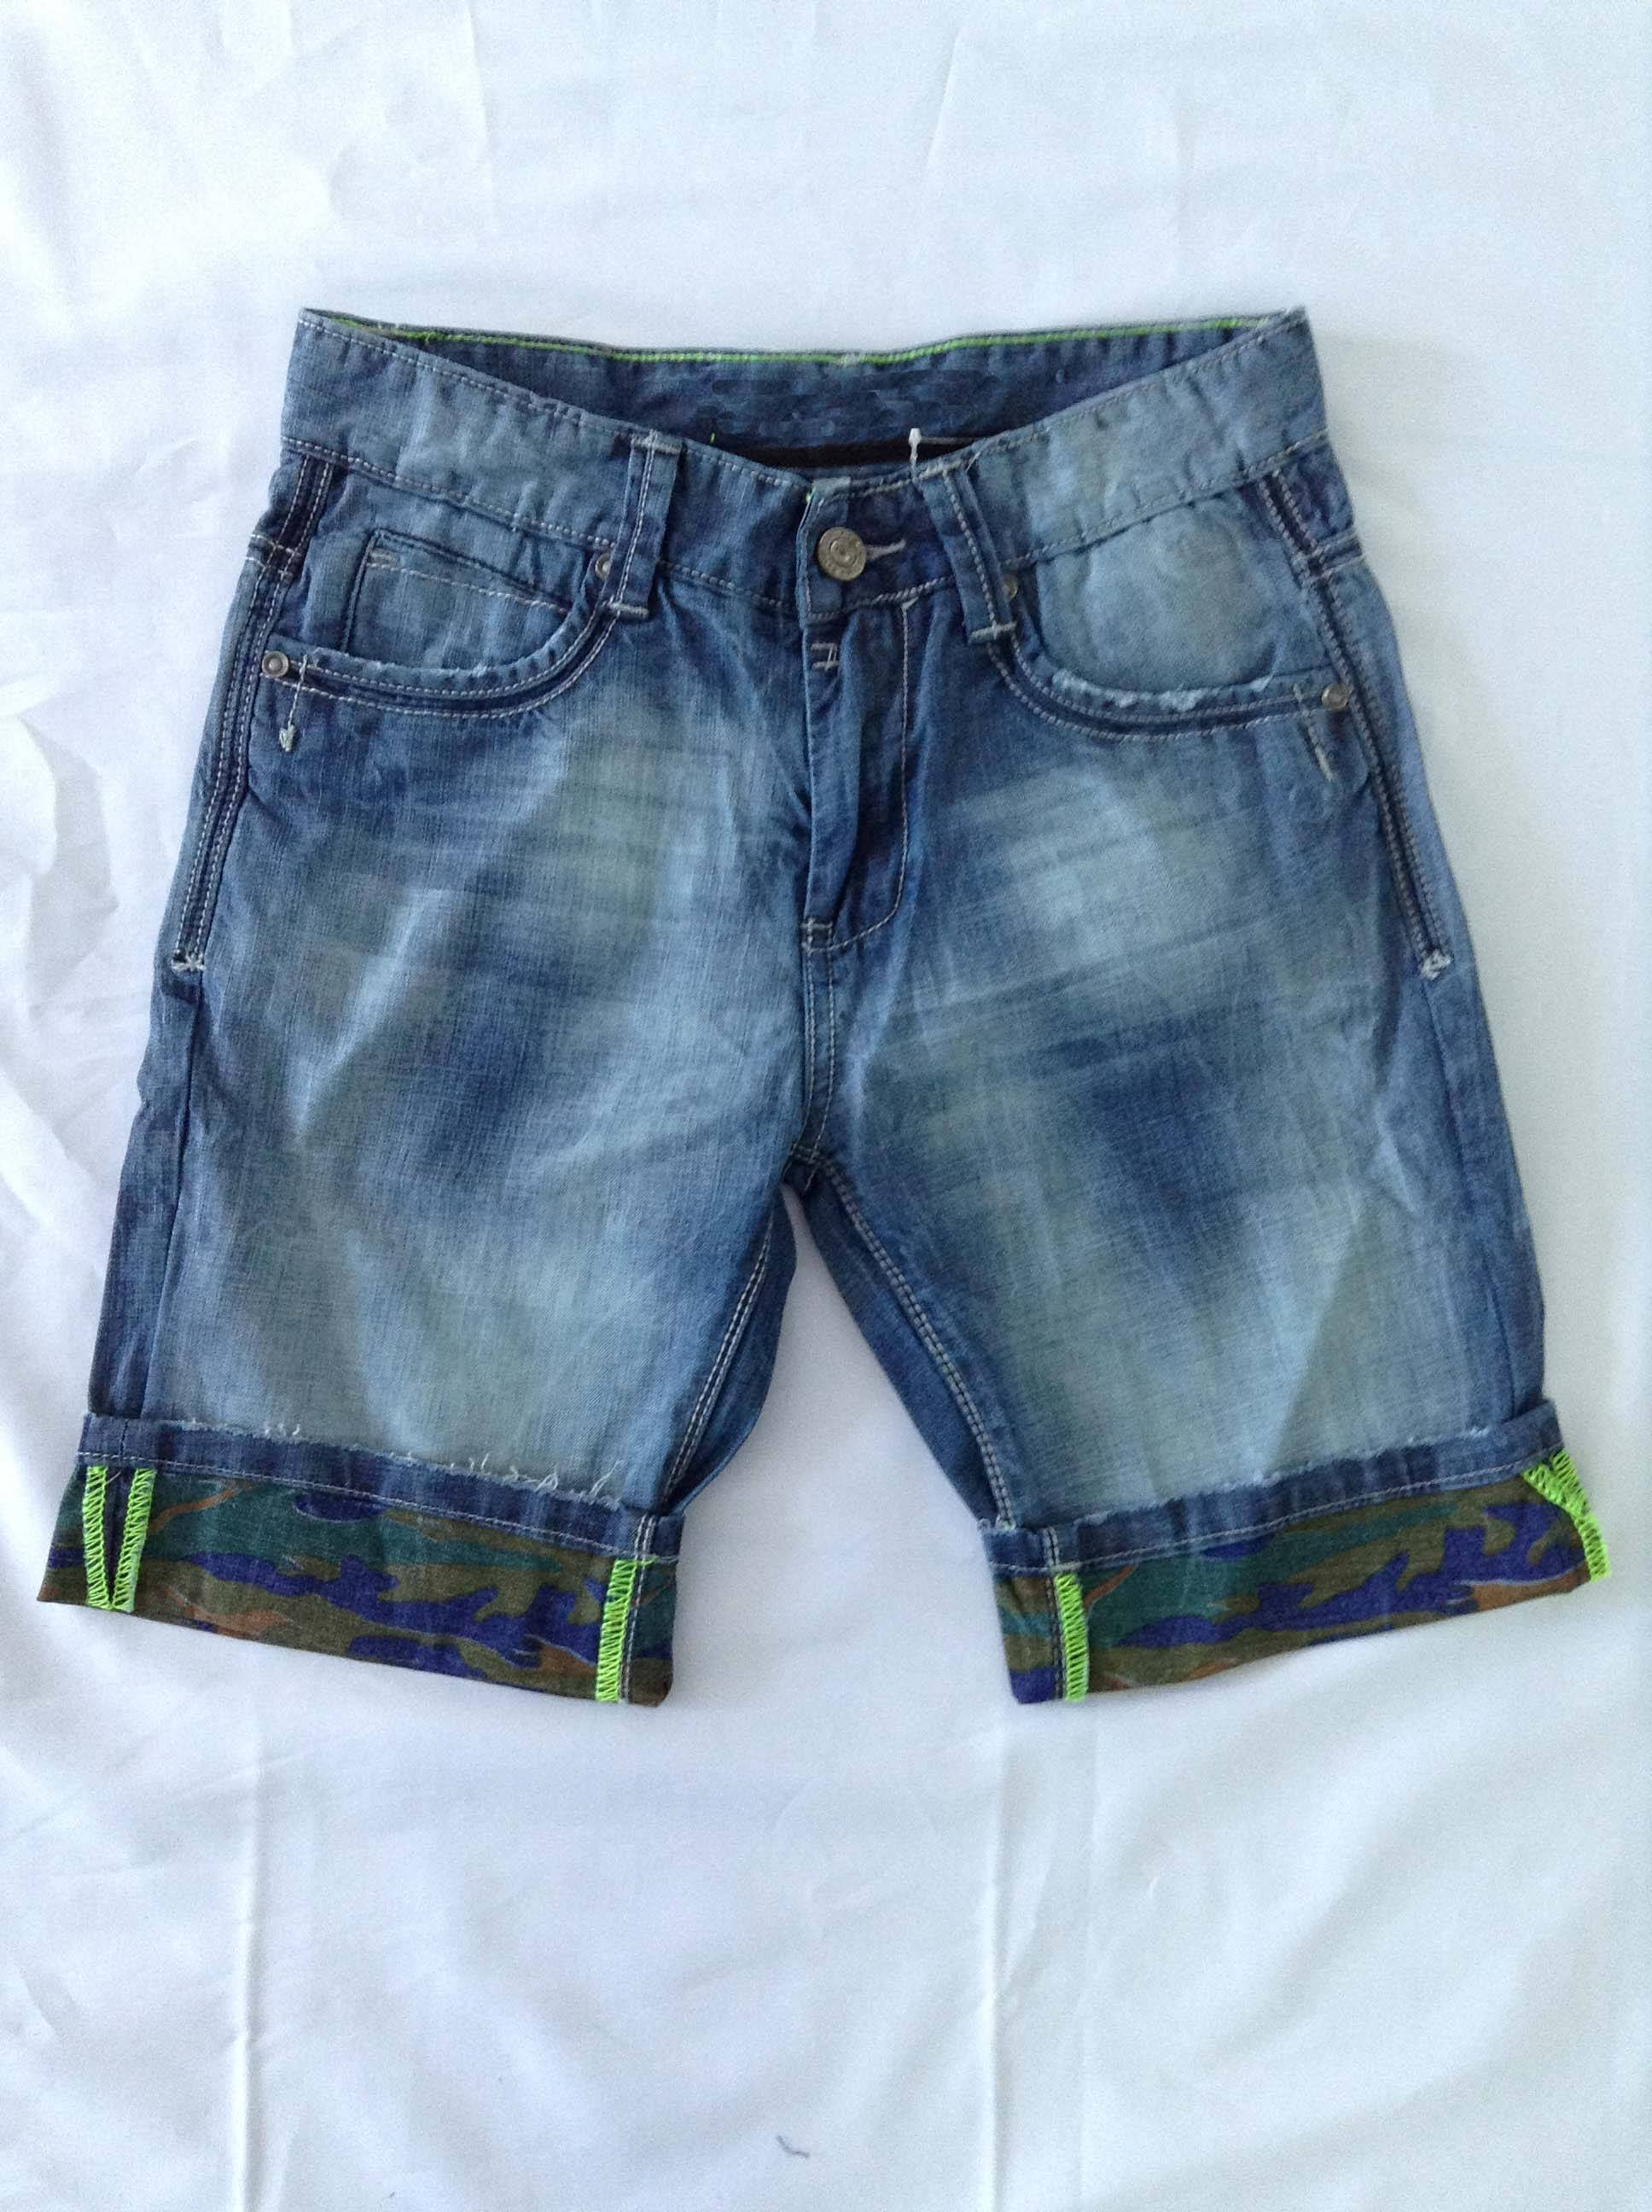 Popular Men's Jeans Pants Jeans Shorts